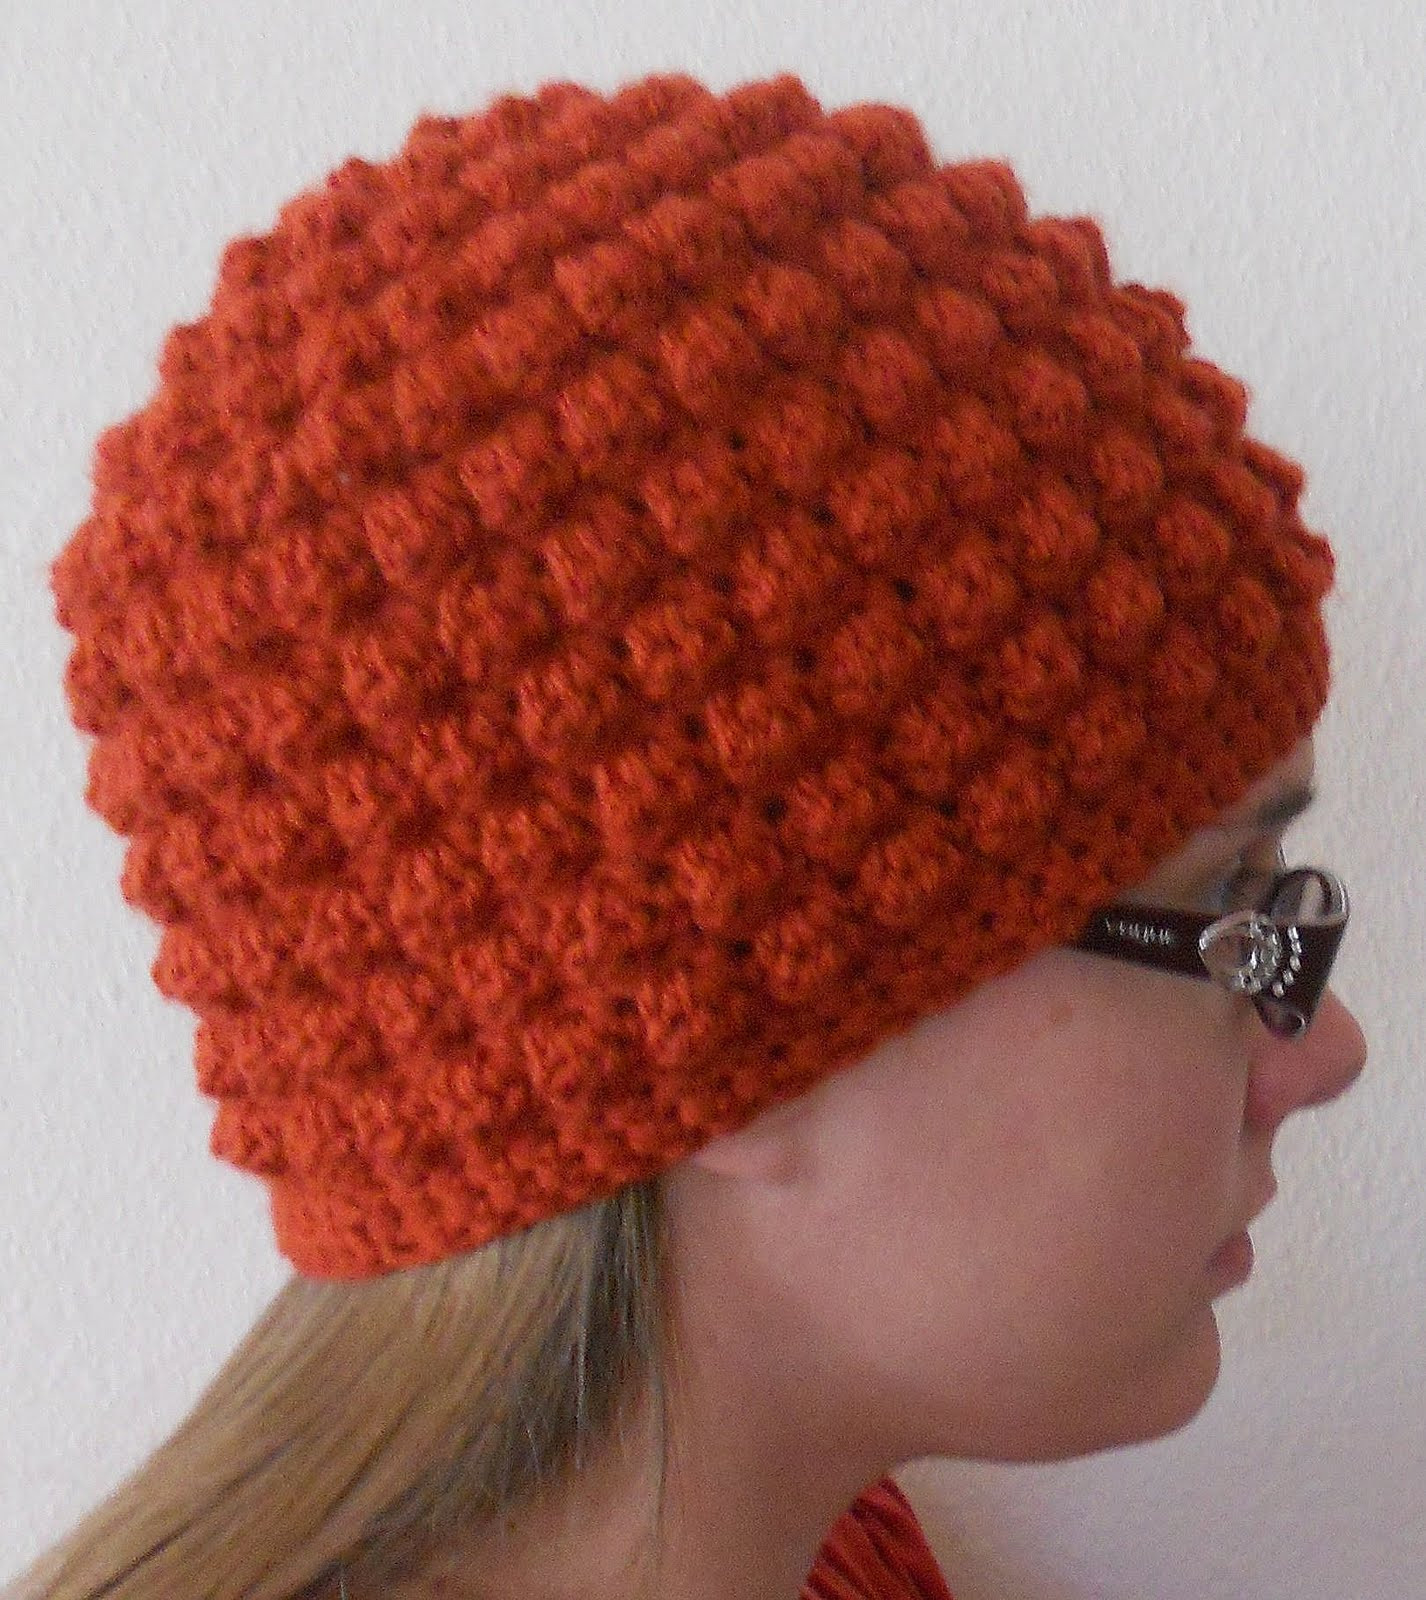 Inspirational Crafty Woman Creations Free Adult Size Bumpy Bobbles Free Crochet Hat Patterns for Adults Of Incredible 50 Pics Free Crochet Hat Patterns for Adults